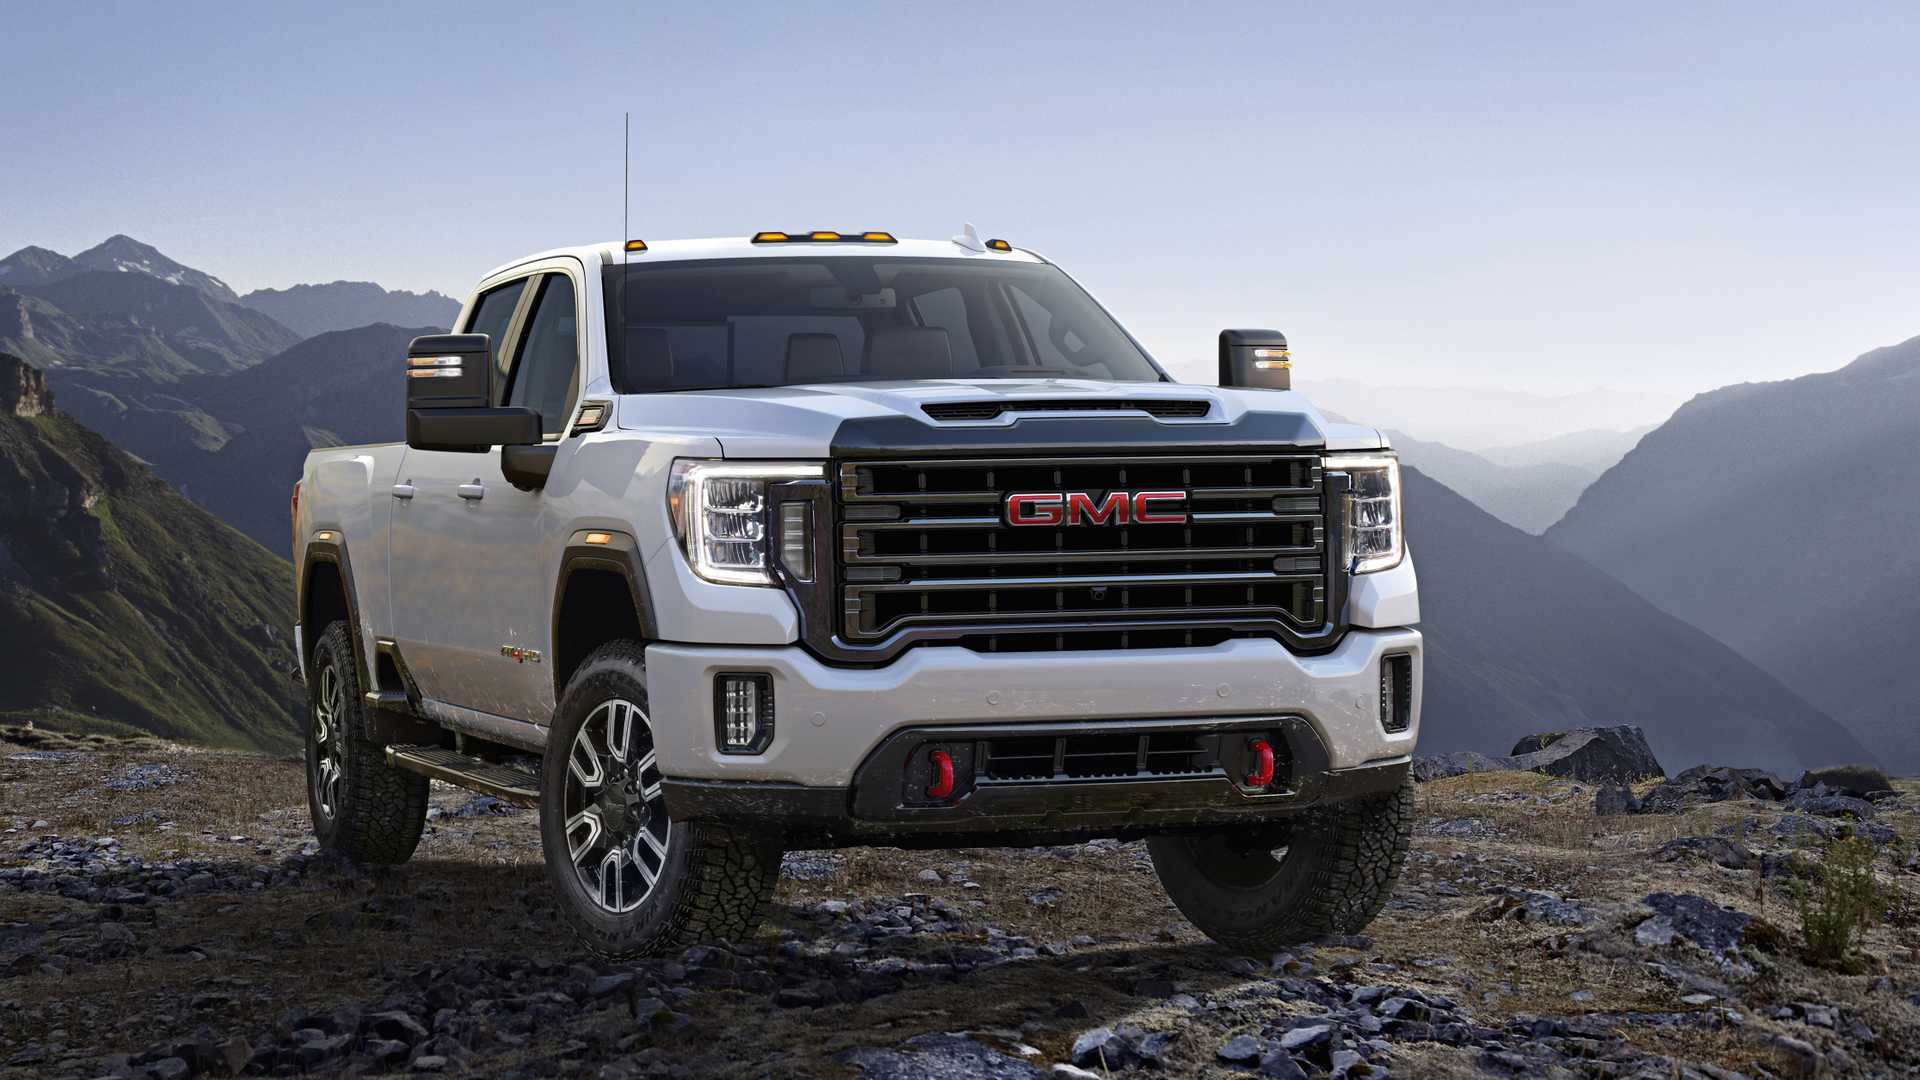 2020 GMC Sierra Price and Review